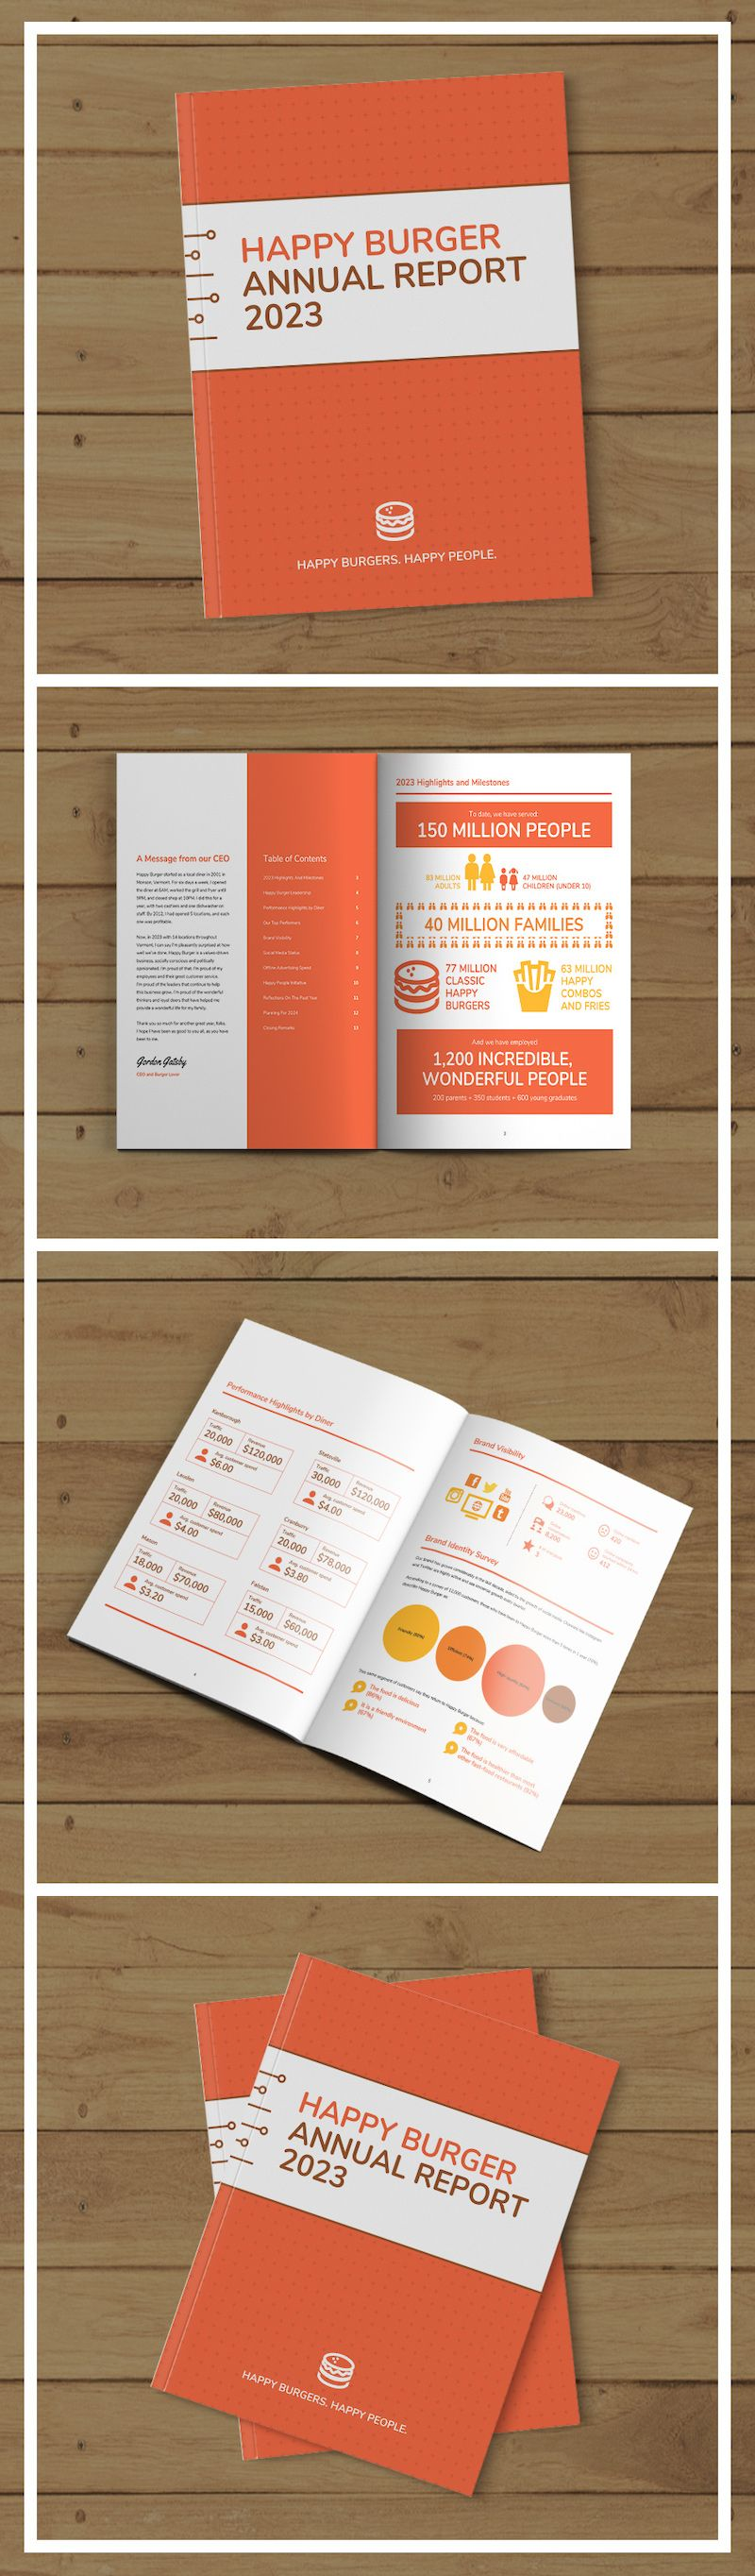 Year End Annual Report Template #annualreports